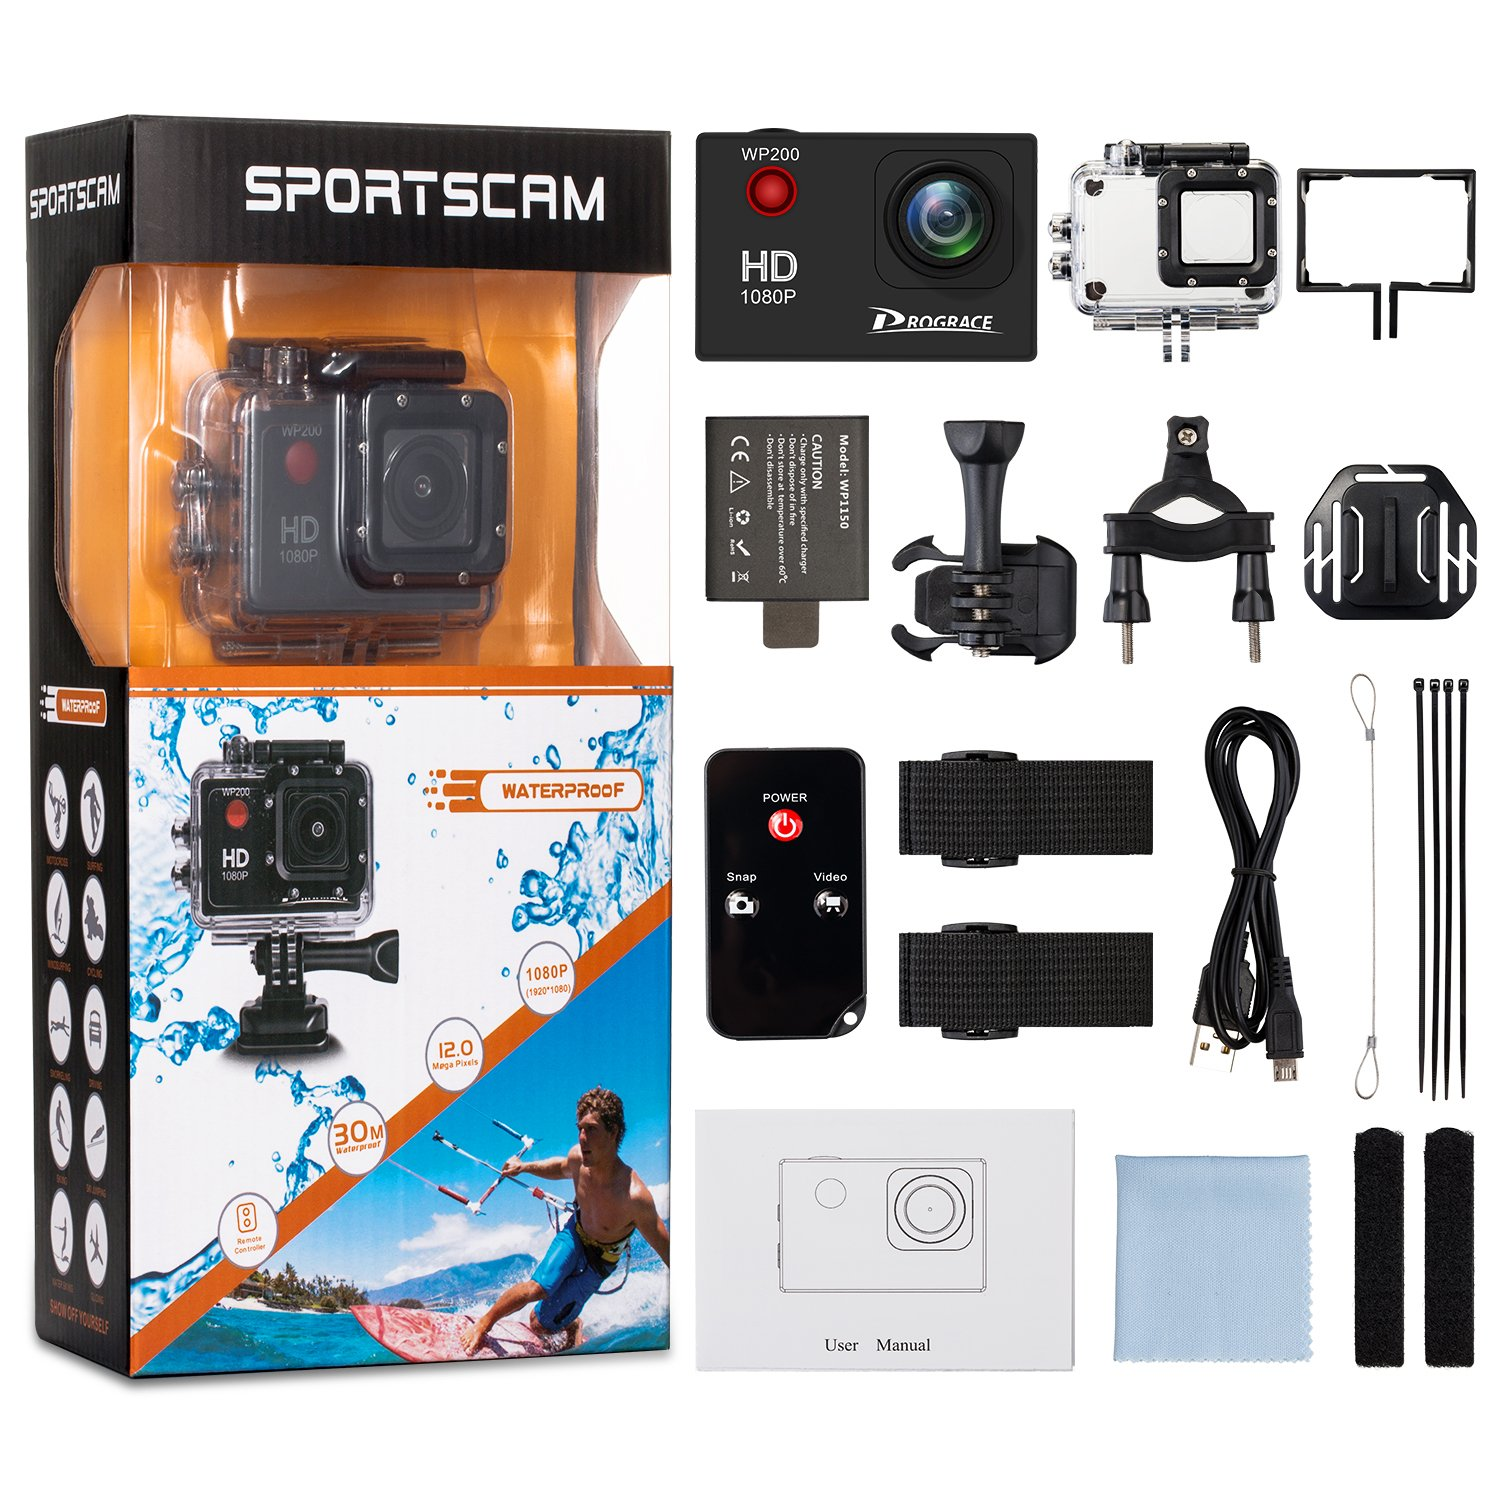 Prograce Action Camera Underwater Waterproof Video Sports Sport Cam 4k Full Hd With Remote Camcorder 30fps 1080p 60fps Wifi